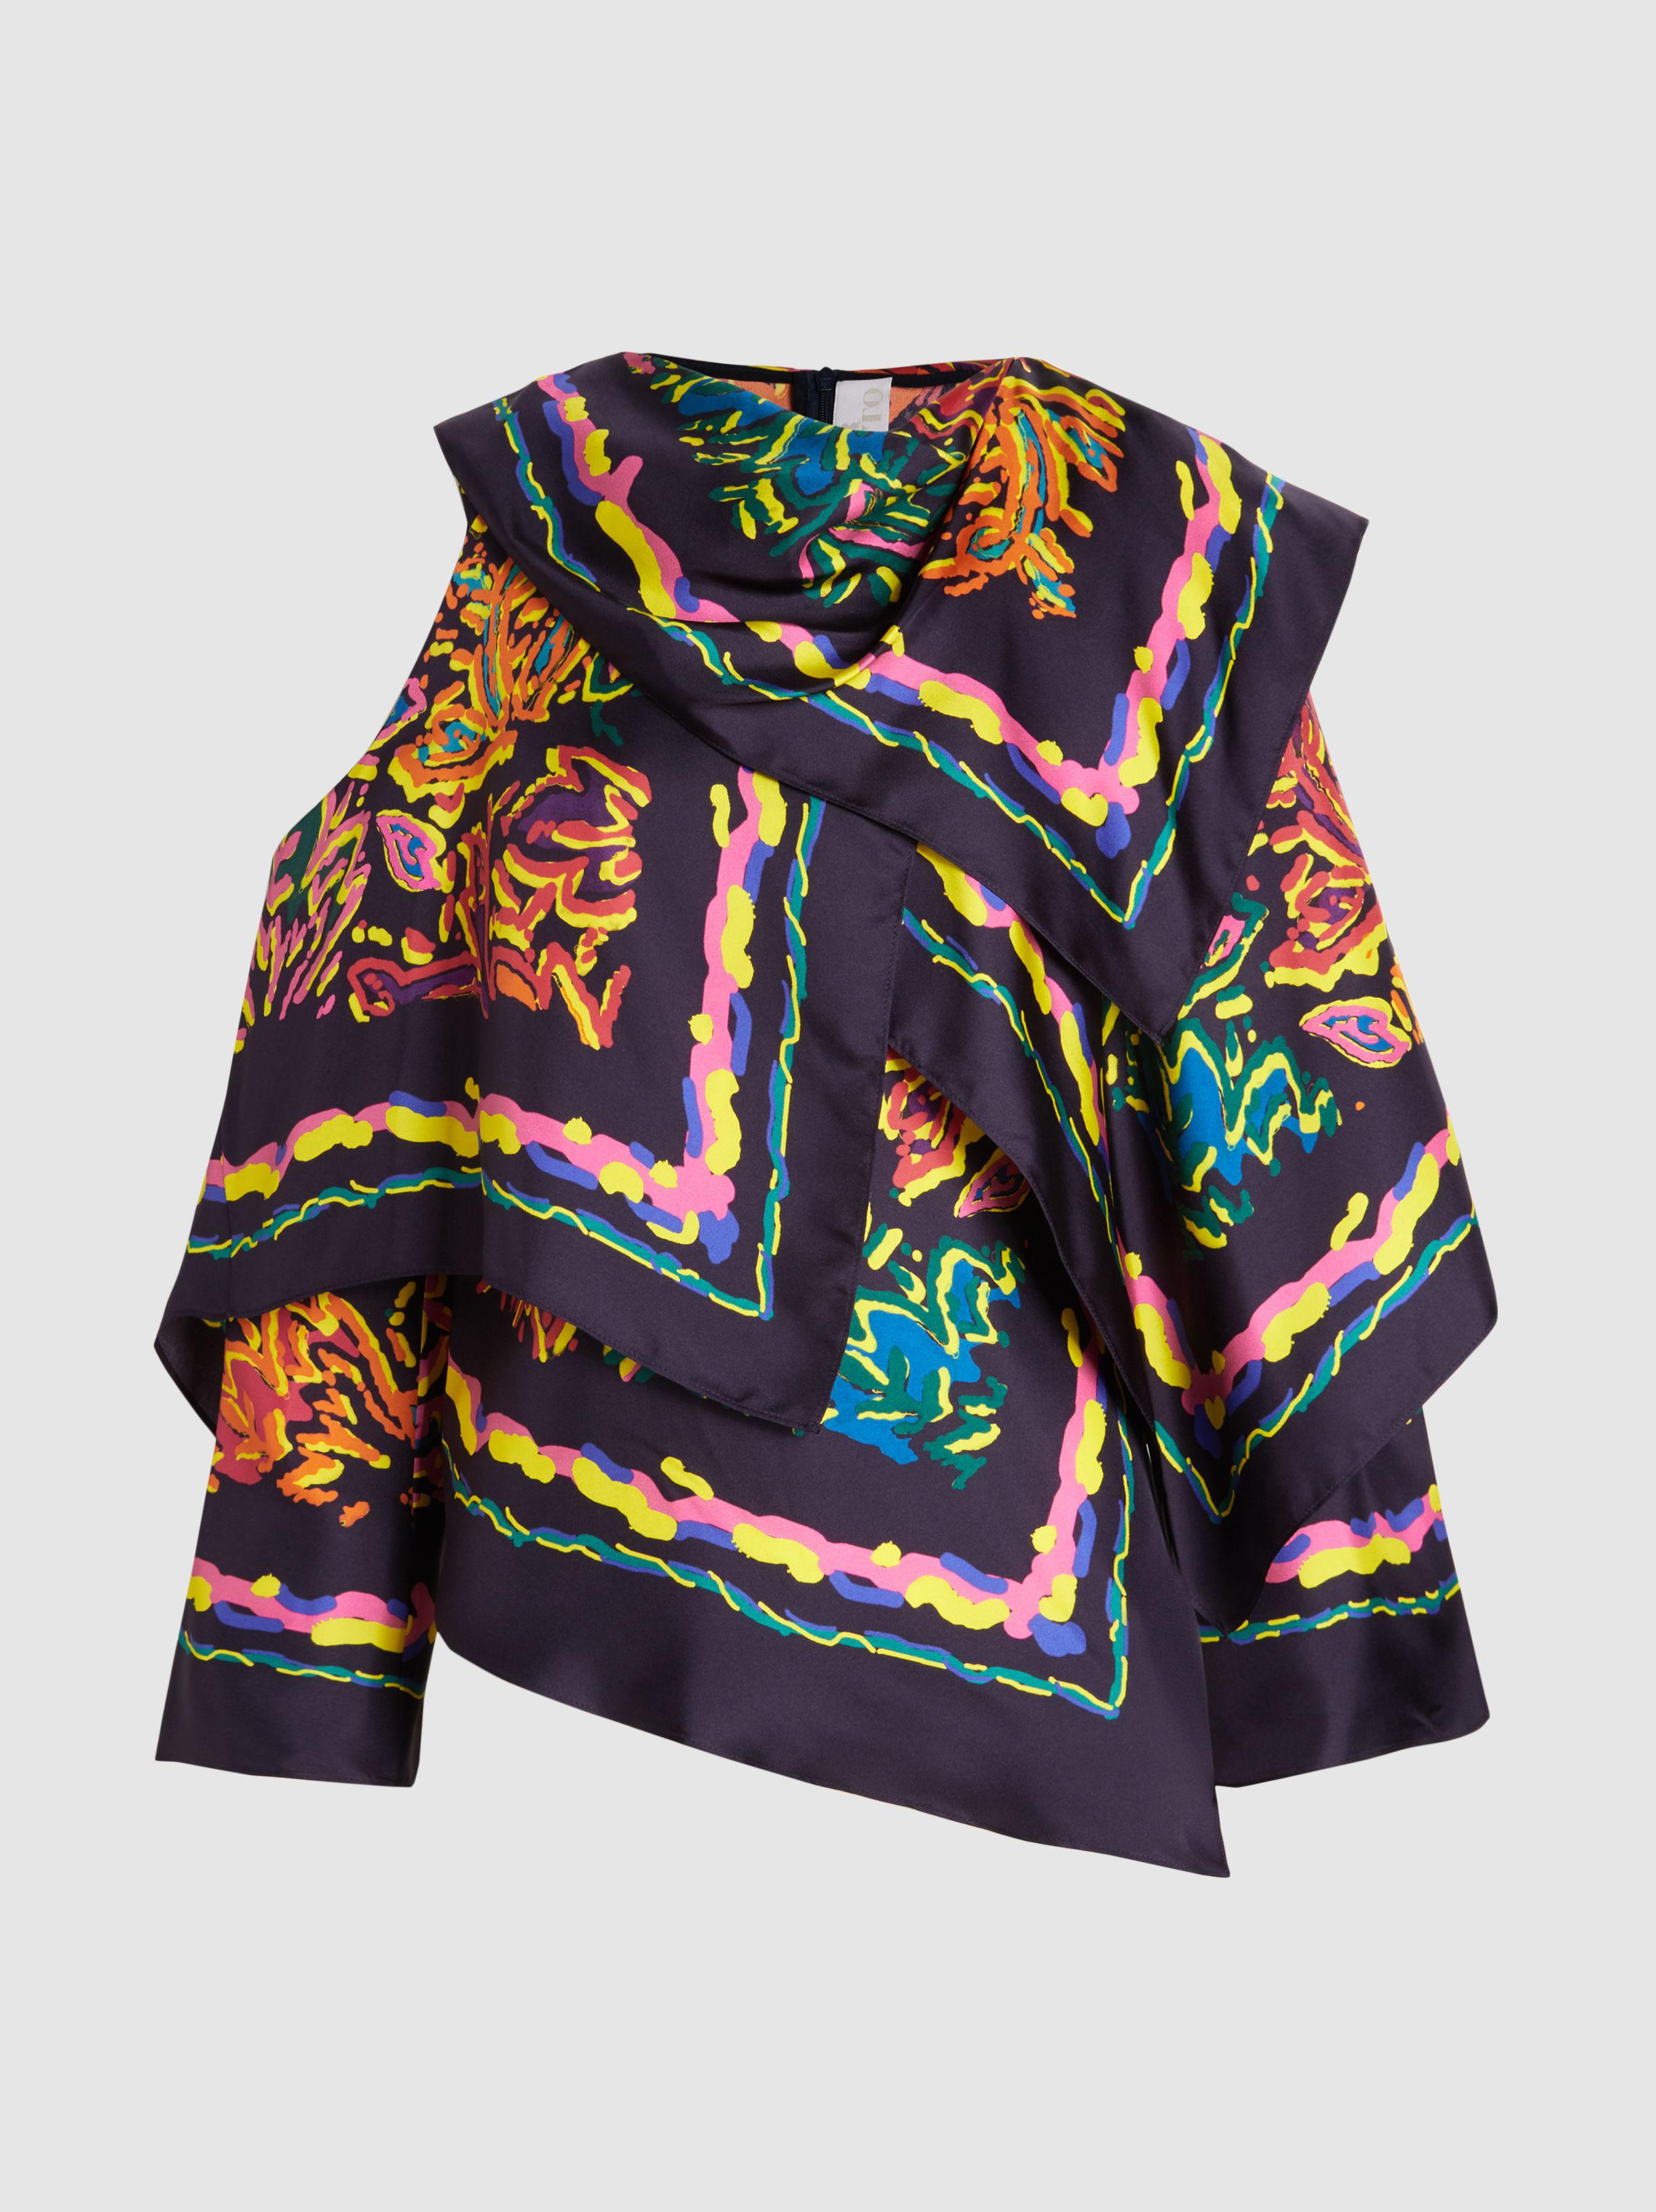 Peter Pilotto Woman Draped Printed Silk-twill Blouse Navy Size 8 Peter Pilotto Low Shipping Fee Cheap Online iUipdEr